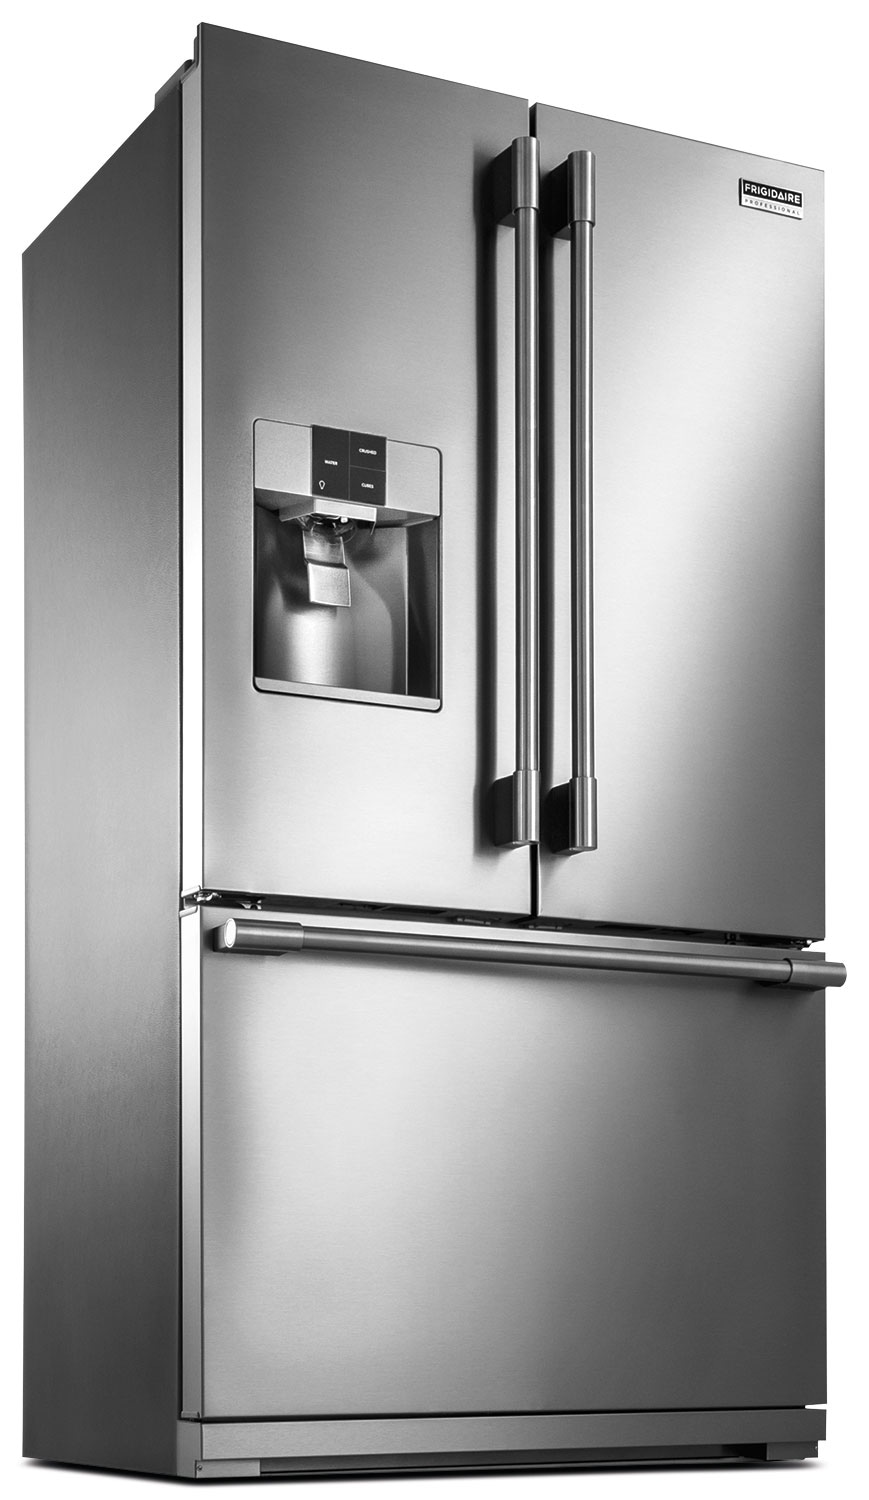 Frigidaire Professional 22.6 Cu. Ft. Refrigerator with Ice/Water Dispenser